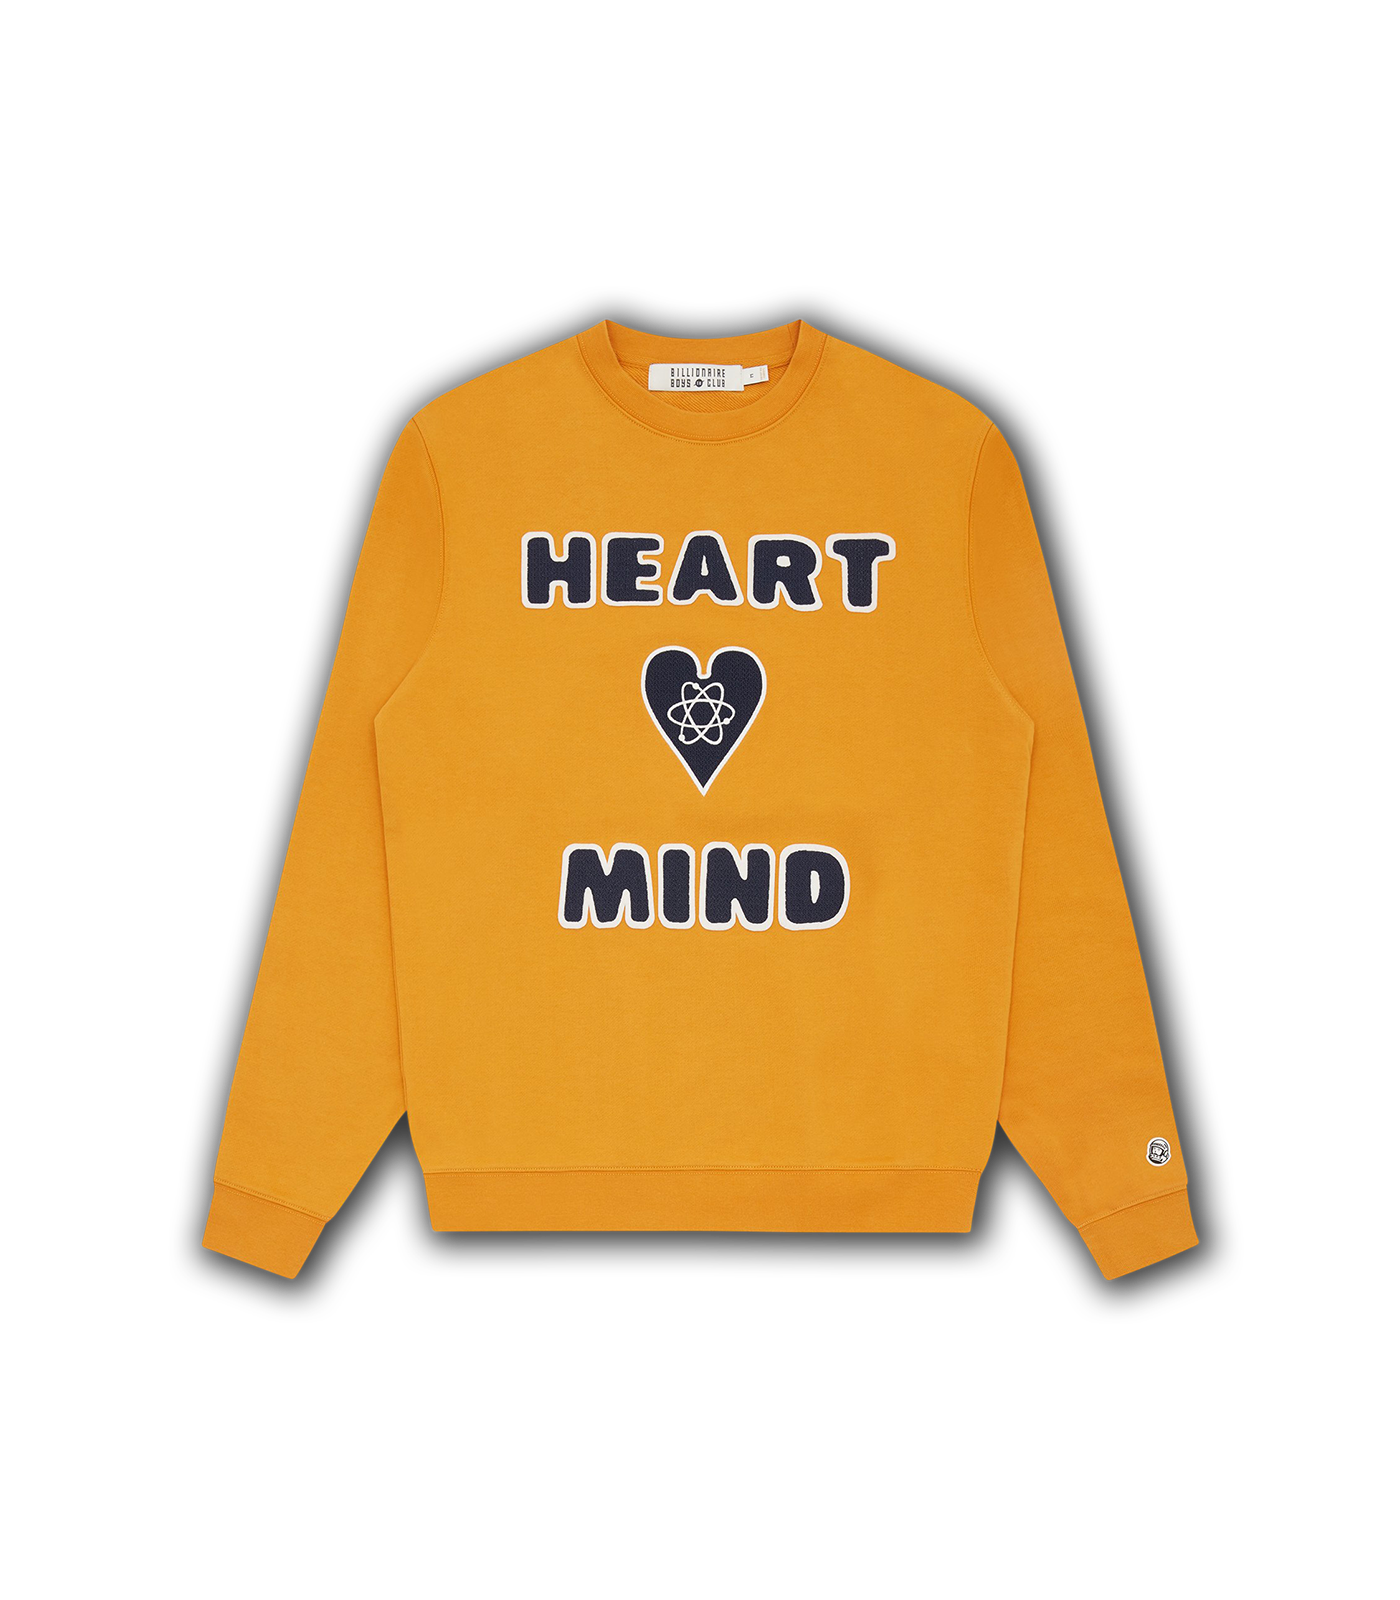 HEART & MIND CREWNECK - YELLOW